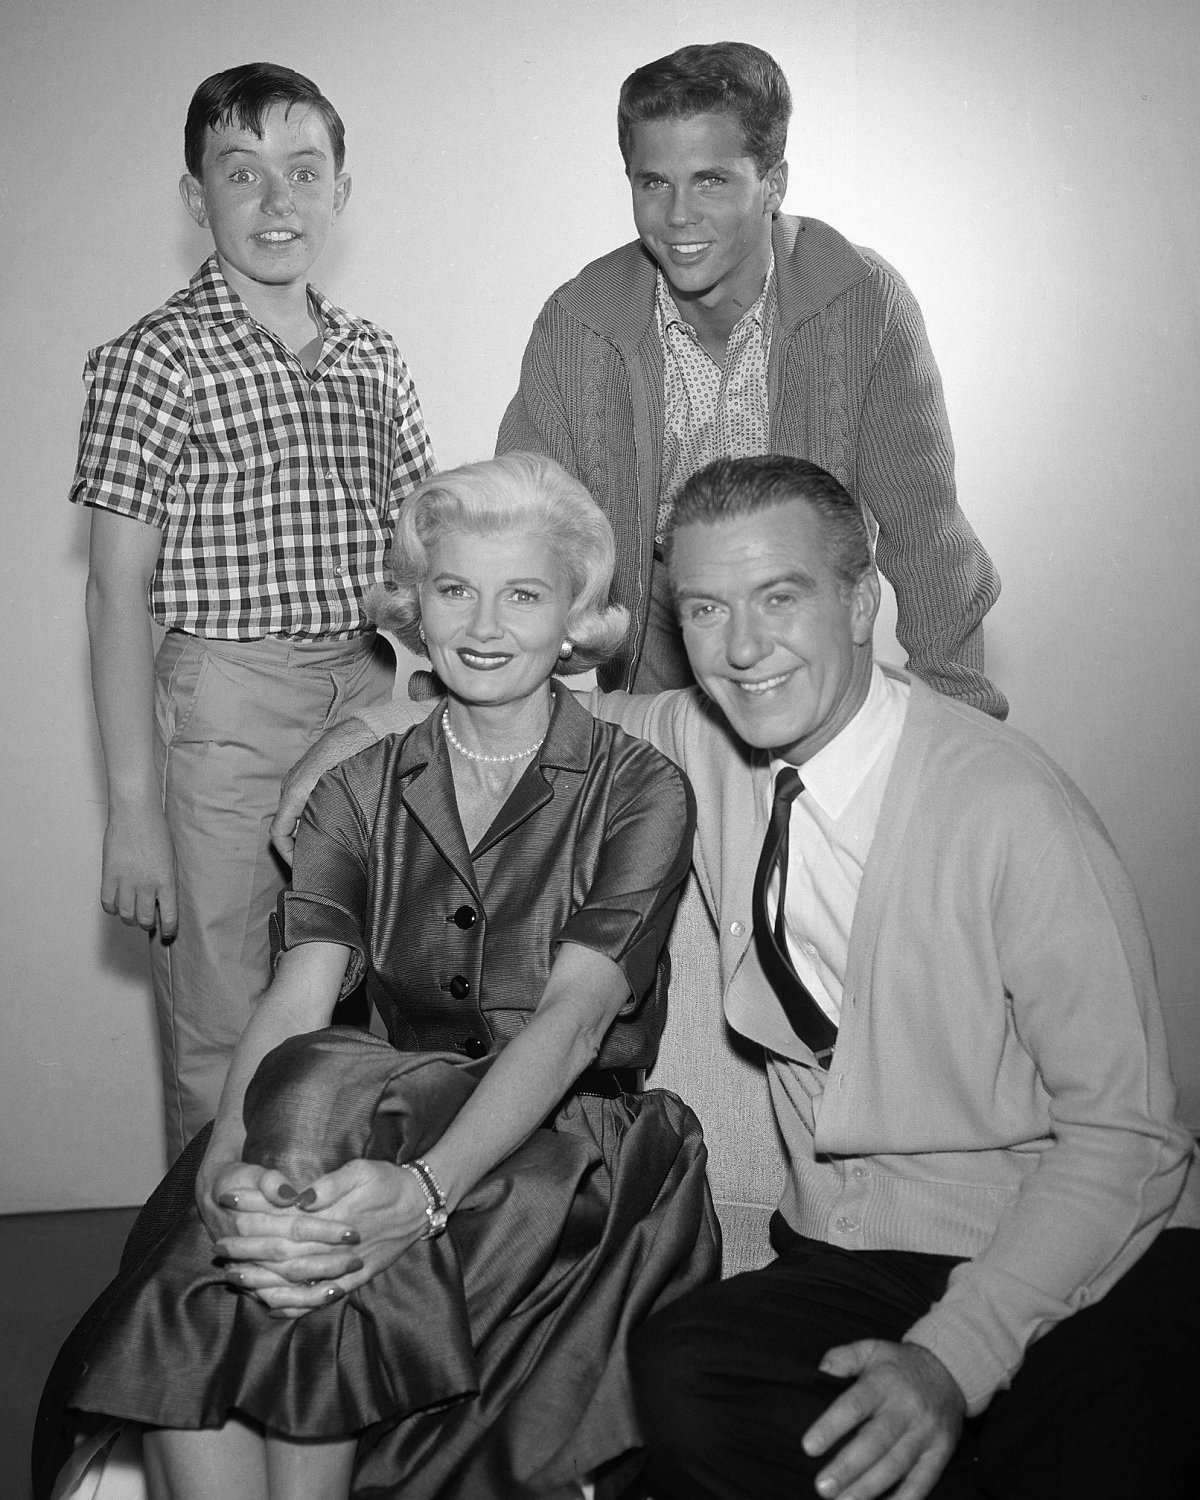 'LEAVE IT TO BEAVER' CAST WALLY JUNE WARD CLEAVER 8X10 PUBLICITY PHOTO (ZZ-158)